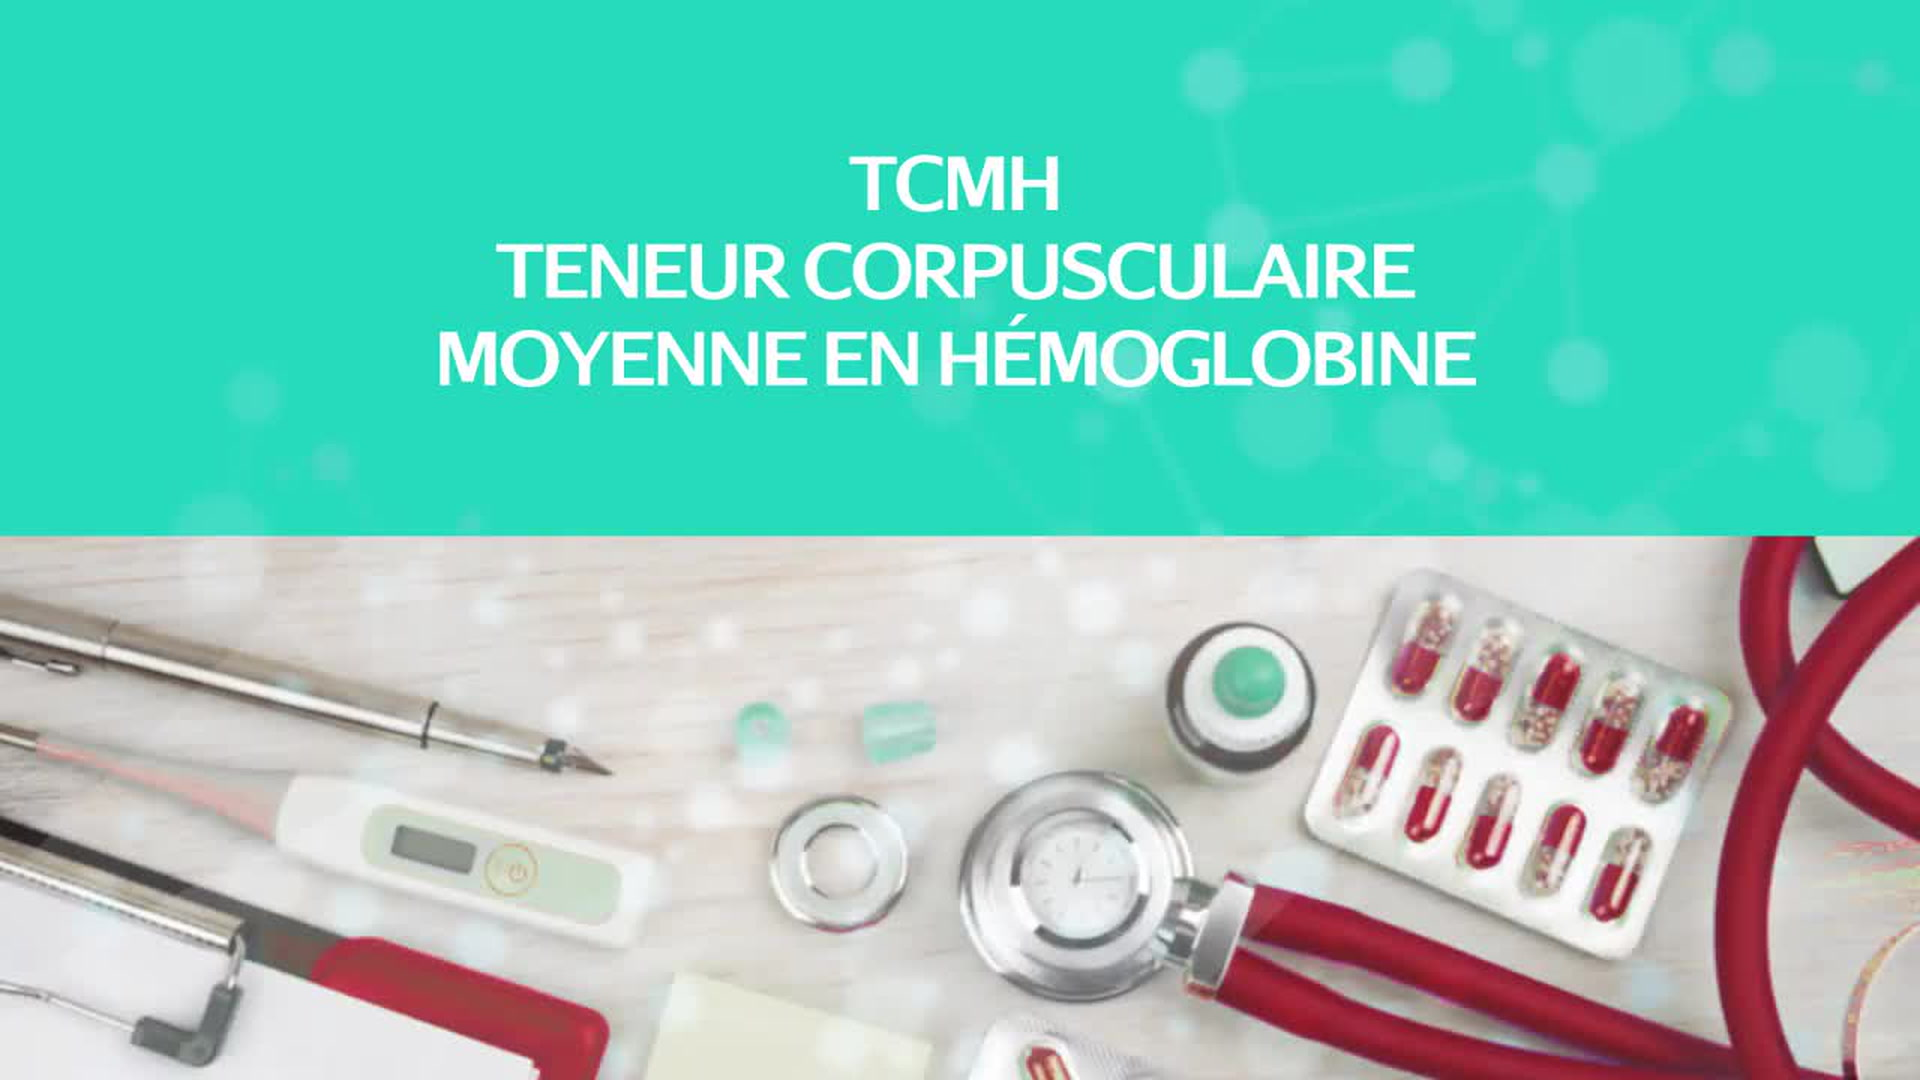 ccmh analyse sanguine